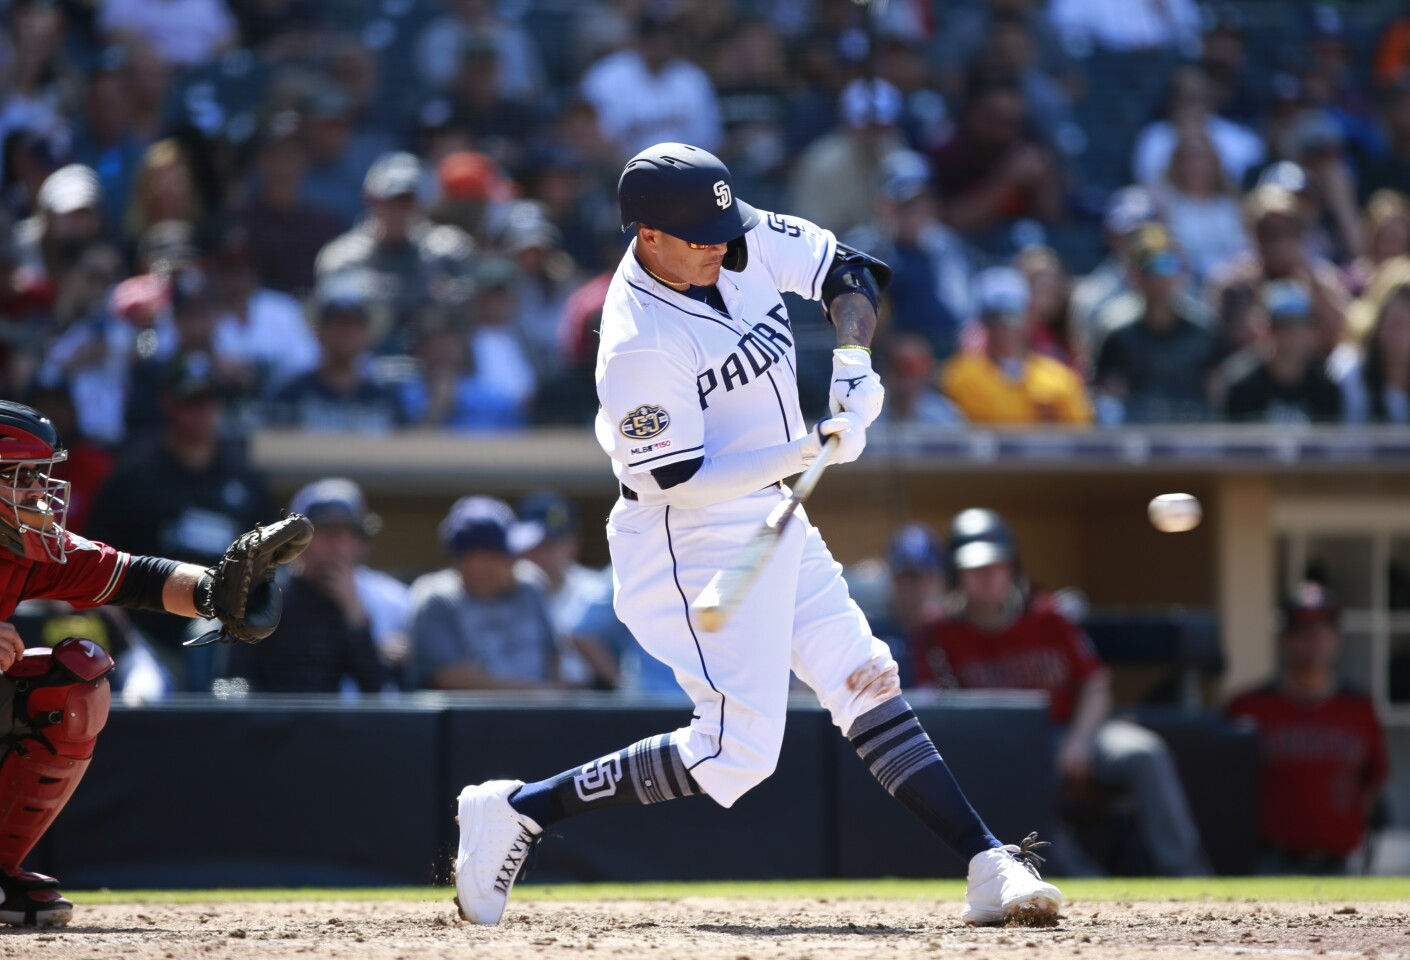 San Diego Padres Manny Machado hit a two-run home run in the 7th inning against the Arizona Diamondbacks at Petco Park in San Diego on April 3, 2019. (Photo by K.C. Alfred/The San Diego Union-Tribune)